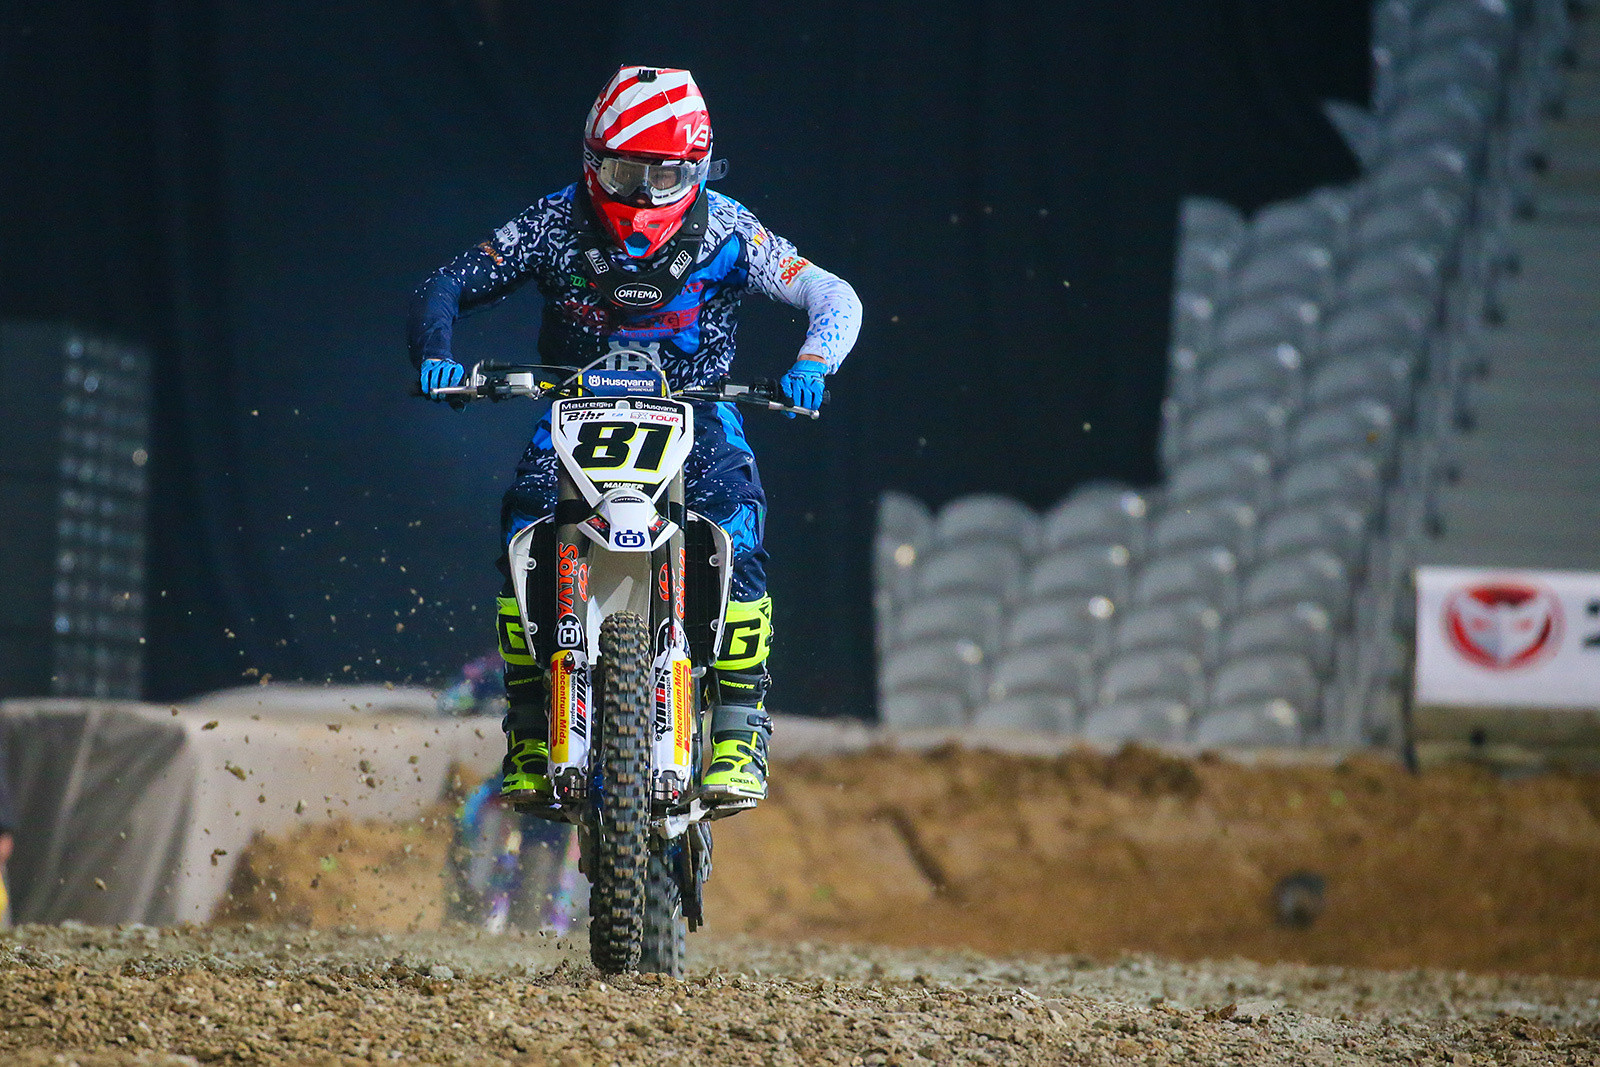 Brian Hsu - Photo Gallery: Saturday at the Paris-Lille Supercross - Motocross Pictures - Vital MX